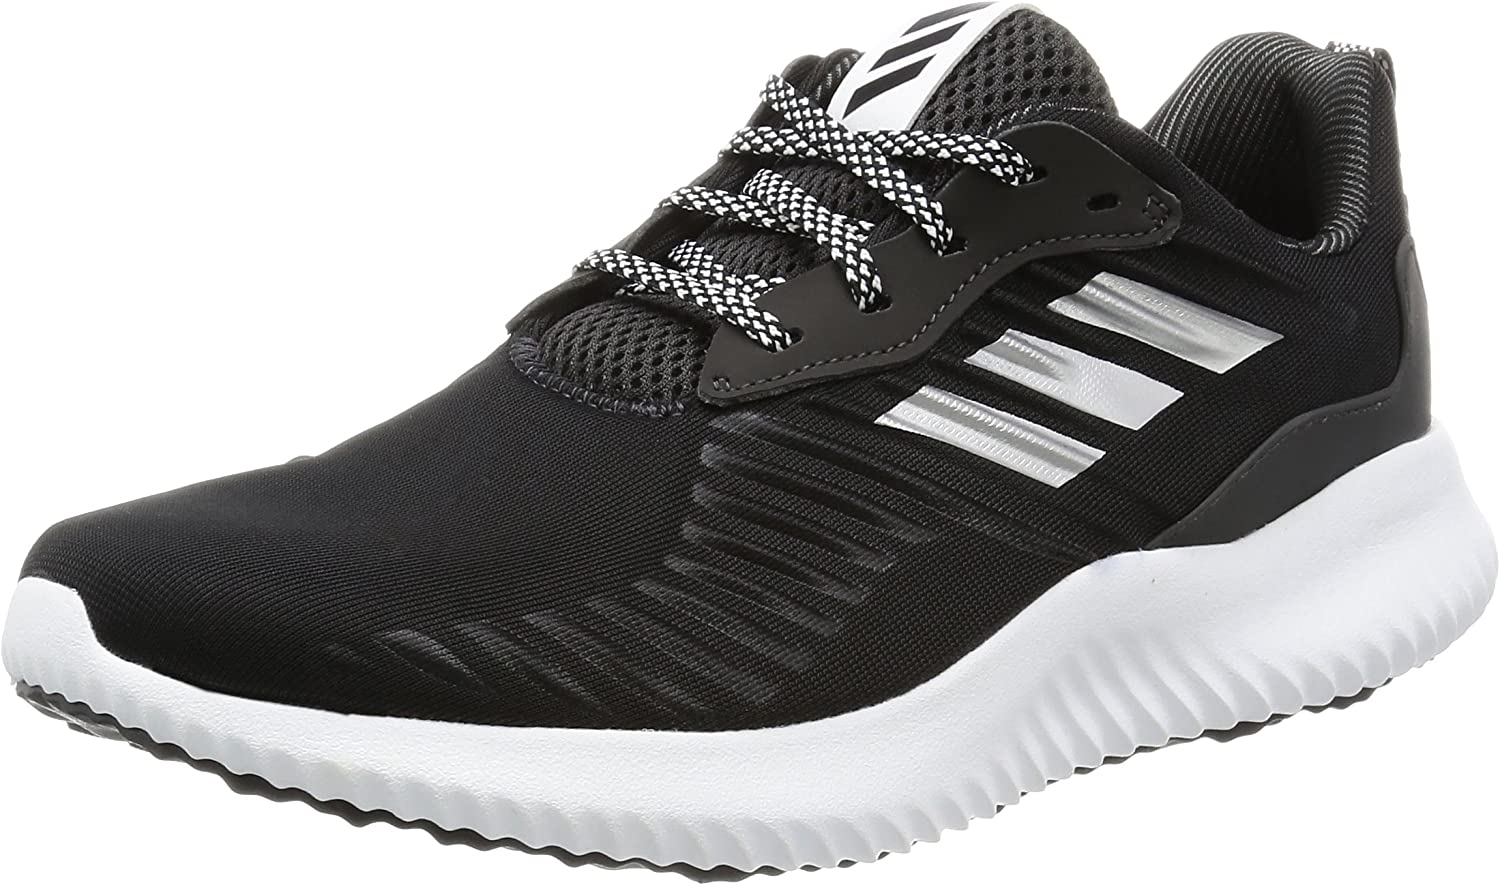 Adidas Men's Alphabounce Rc Competition Running shoes